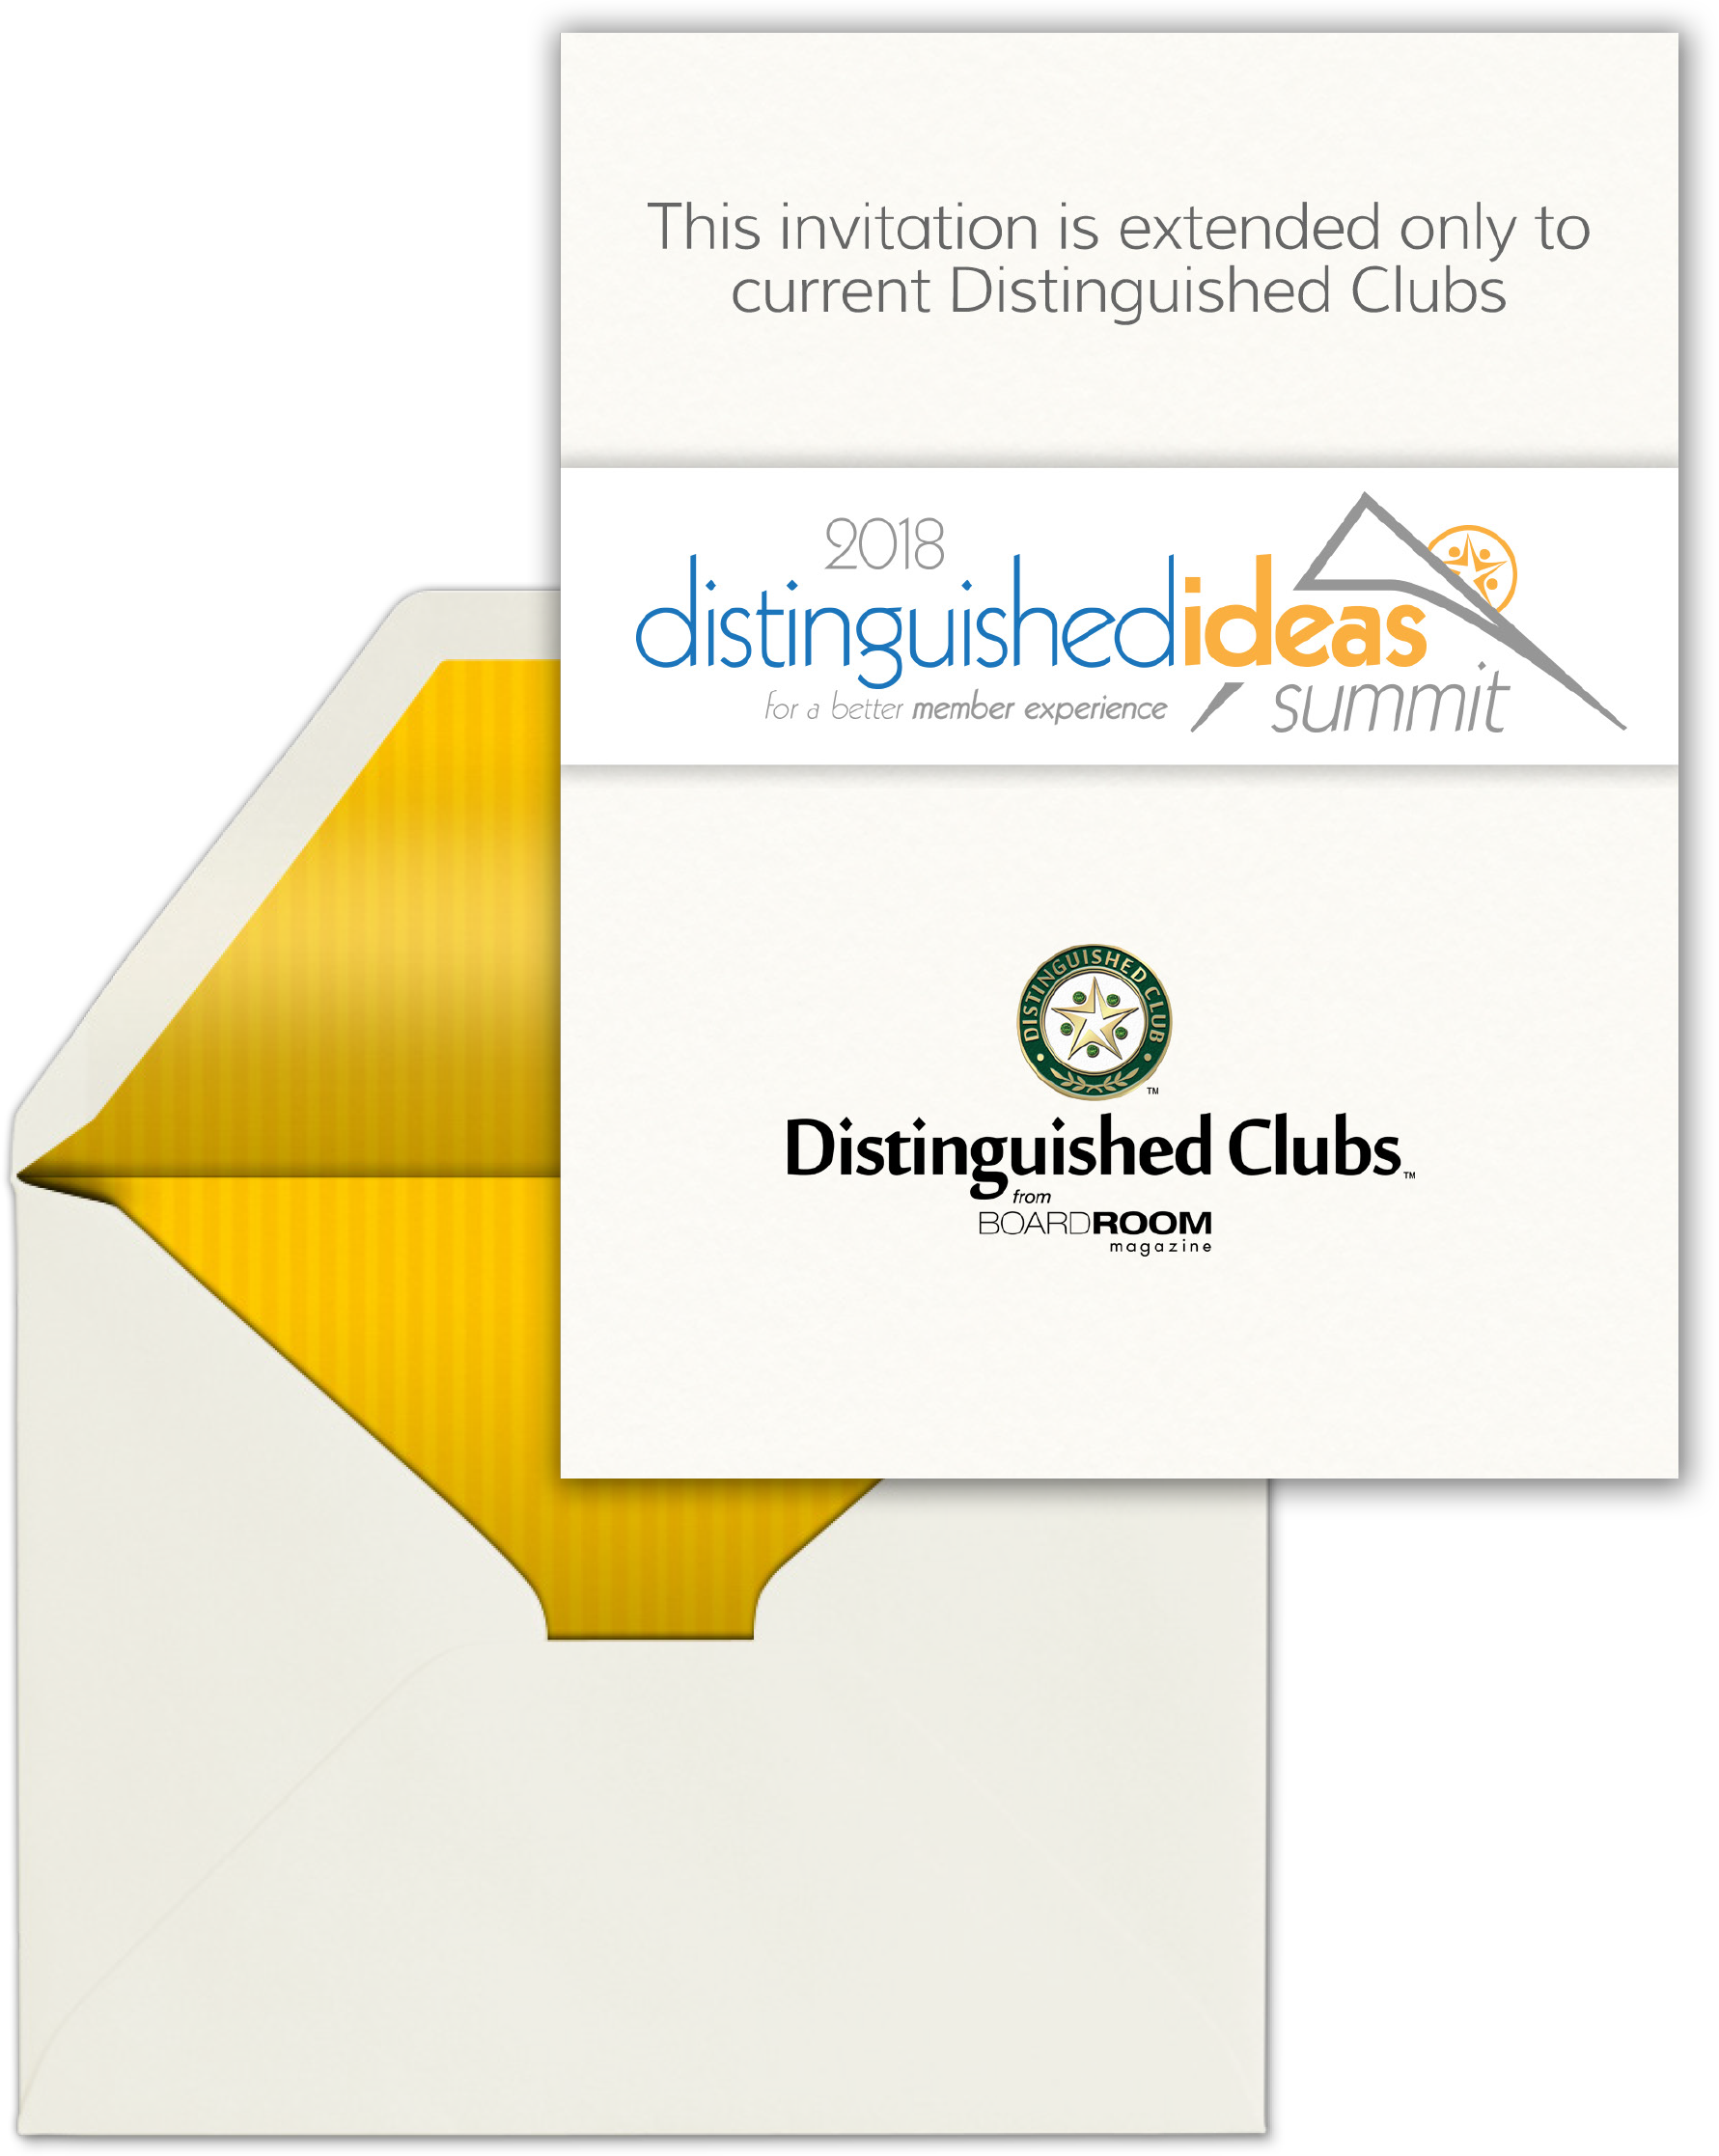 2018 Distinguished Ideas Summit Invite